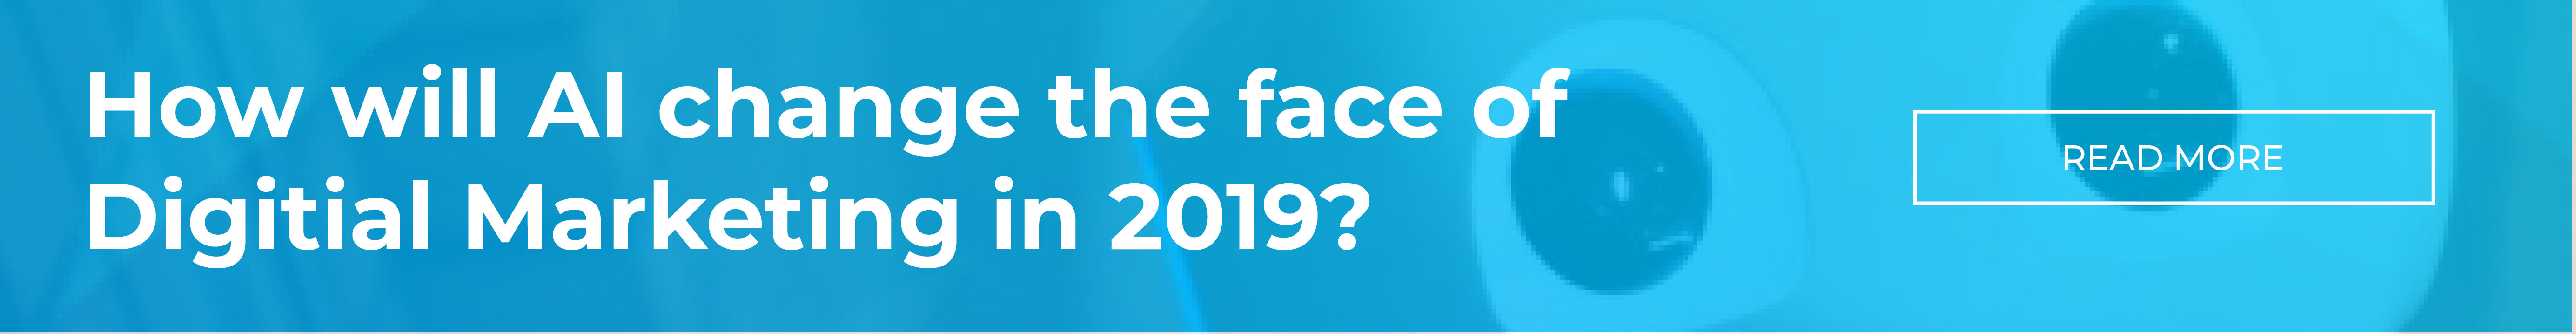 How-Will-Ai-Change-The-Face-Of-Digital-Marketing-In-2019